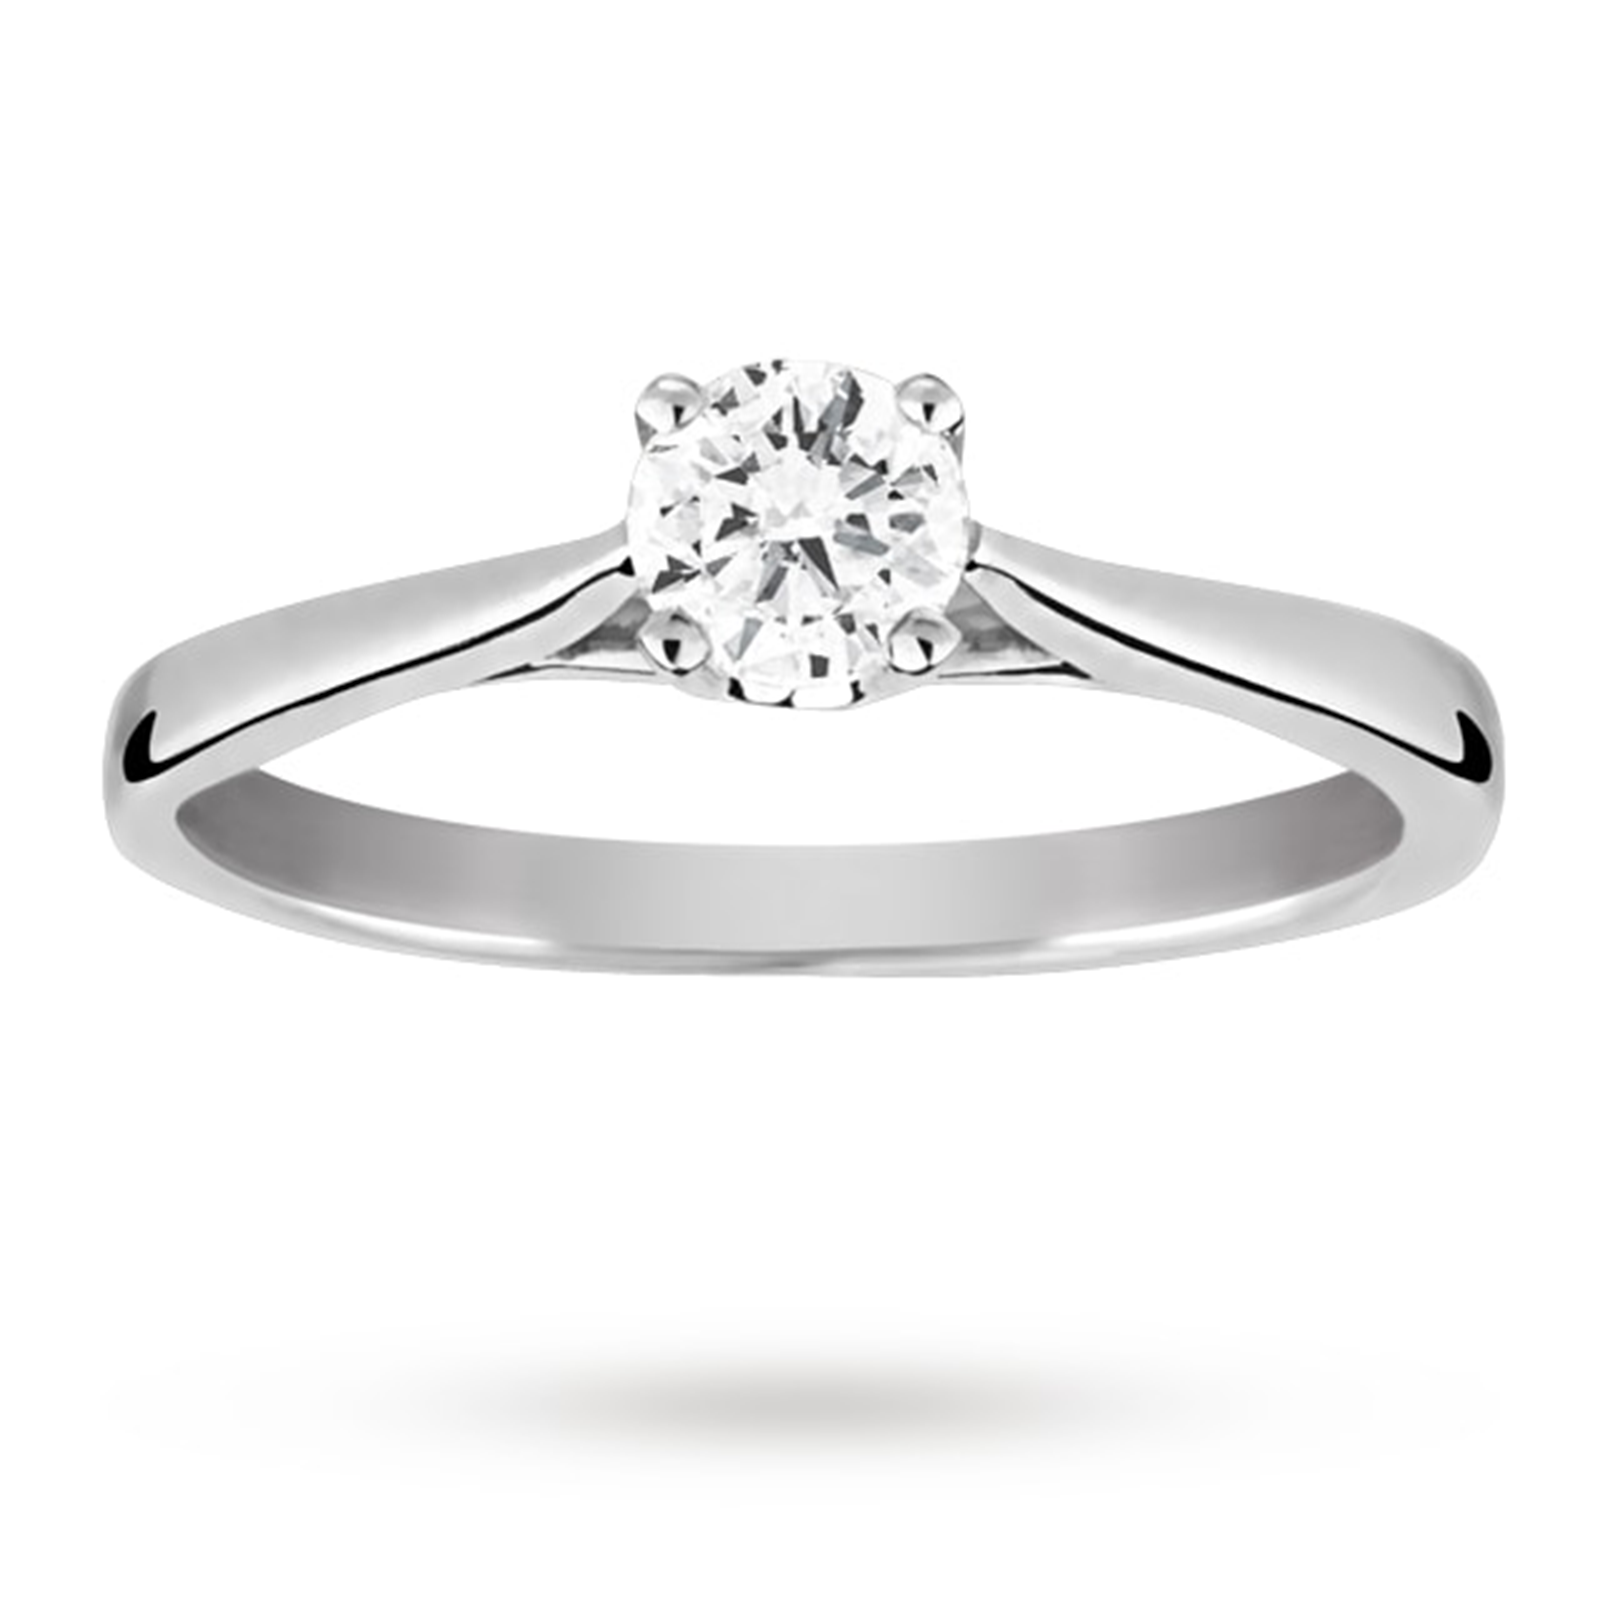 Platinum Brilliant Cut 0.30 Carat 88 Facet Diamond Ring - Ring Size J